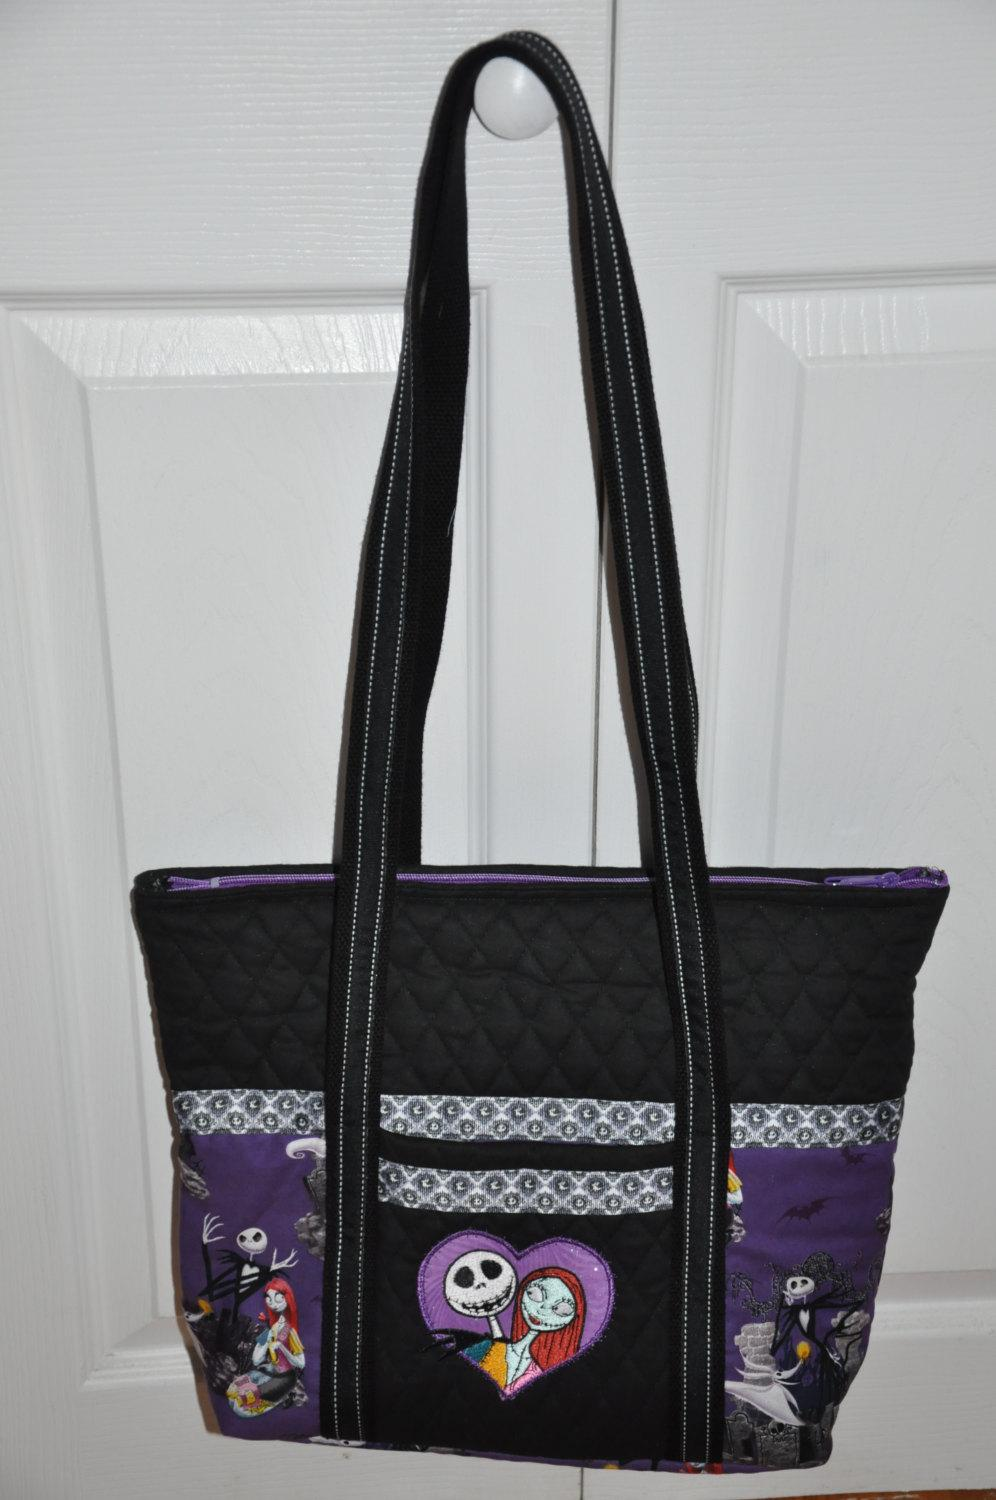 A bag with Jack and Sally from Nightmare Before Christmas design (another look)